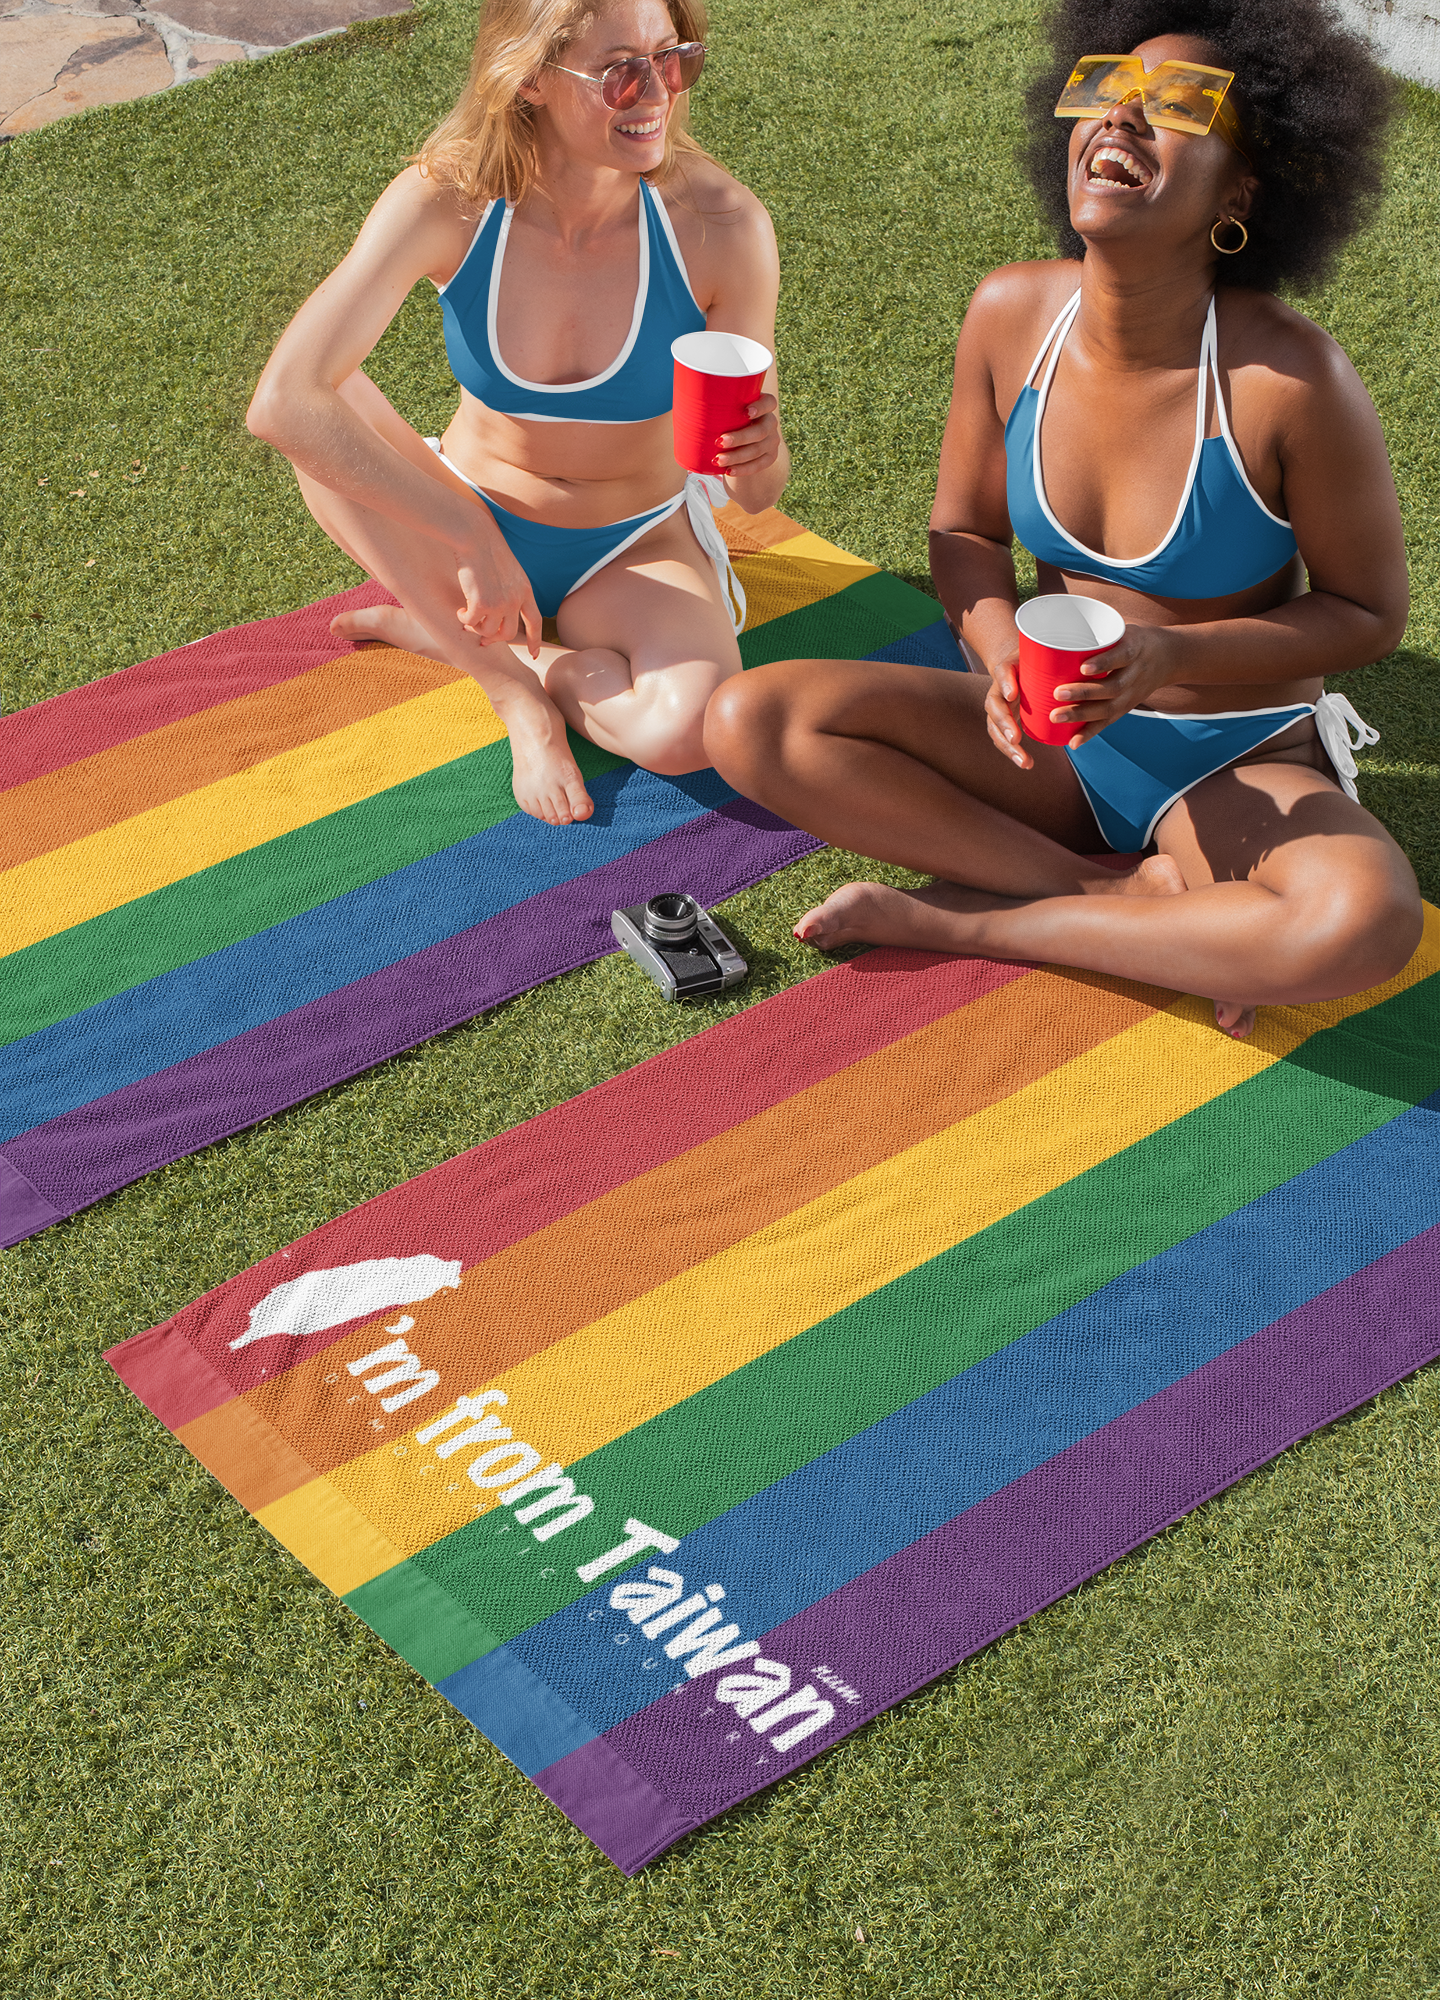 towel-mockup-featuring-two-women-enjoying-a-spring-break-party-32694 (2).png